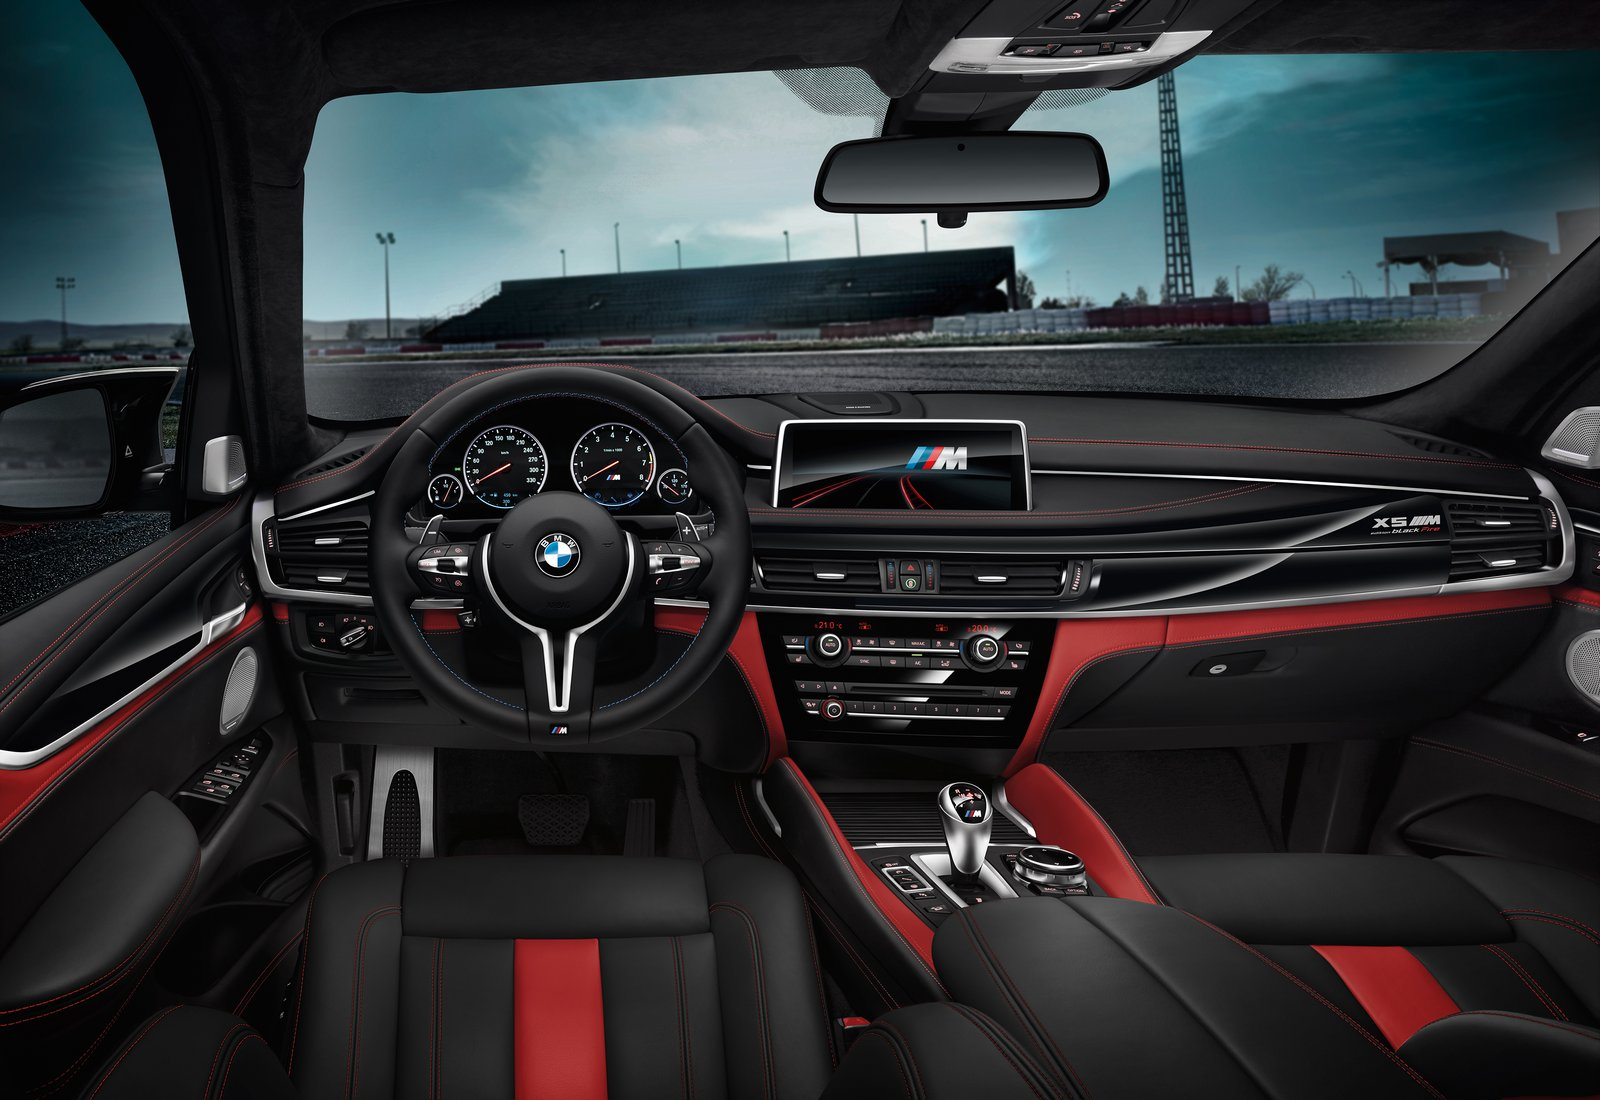 BMW-X5-M-Black-Fire-Edition-2